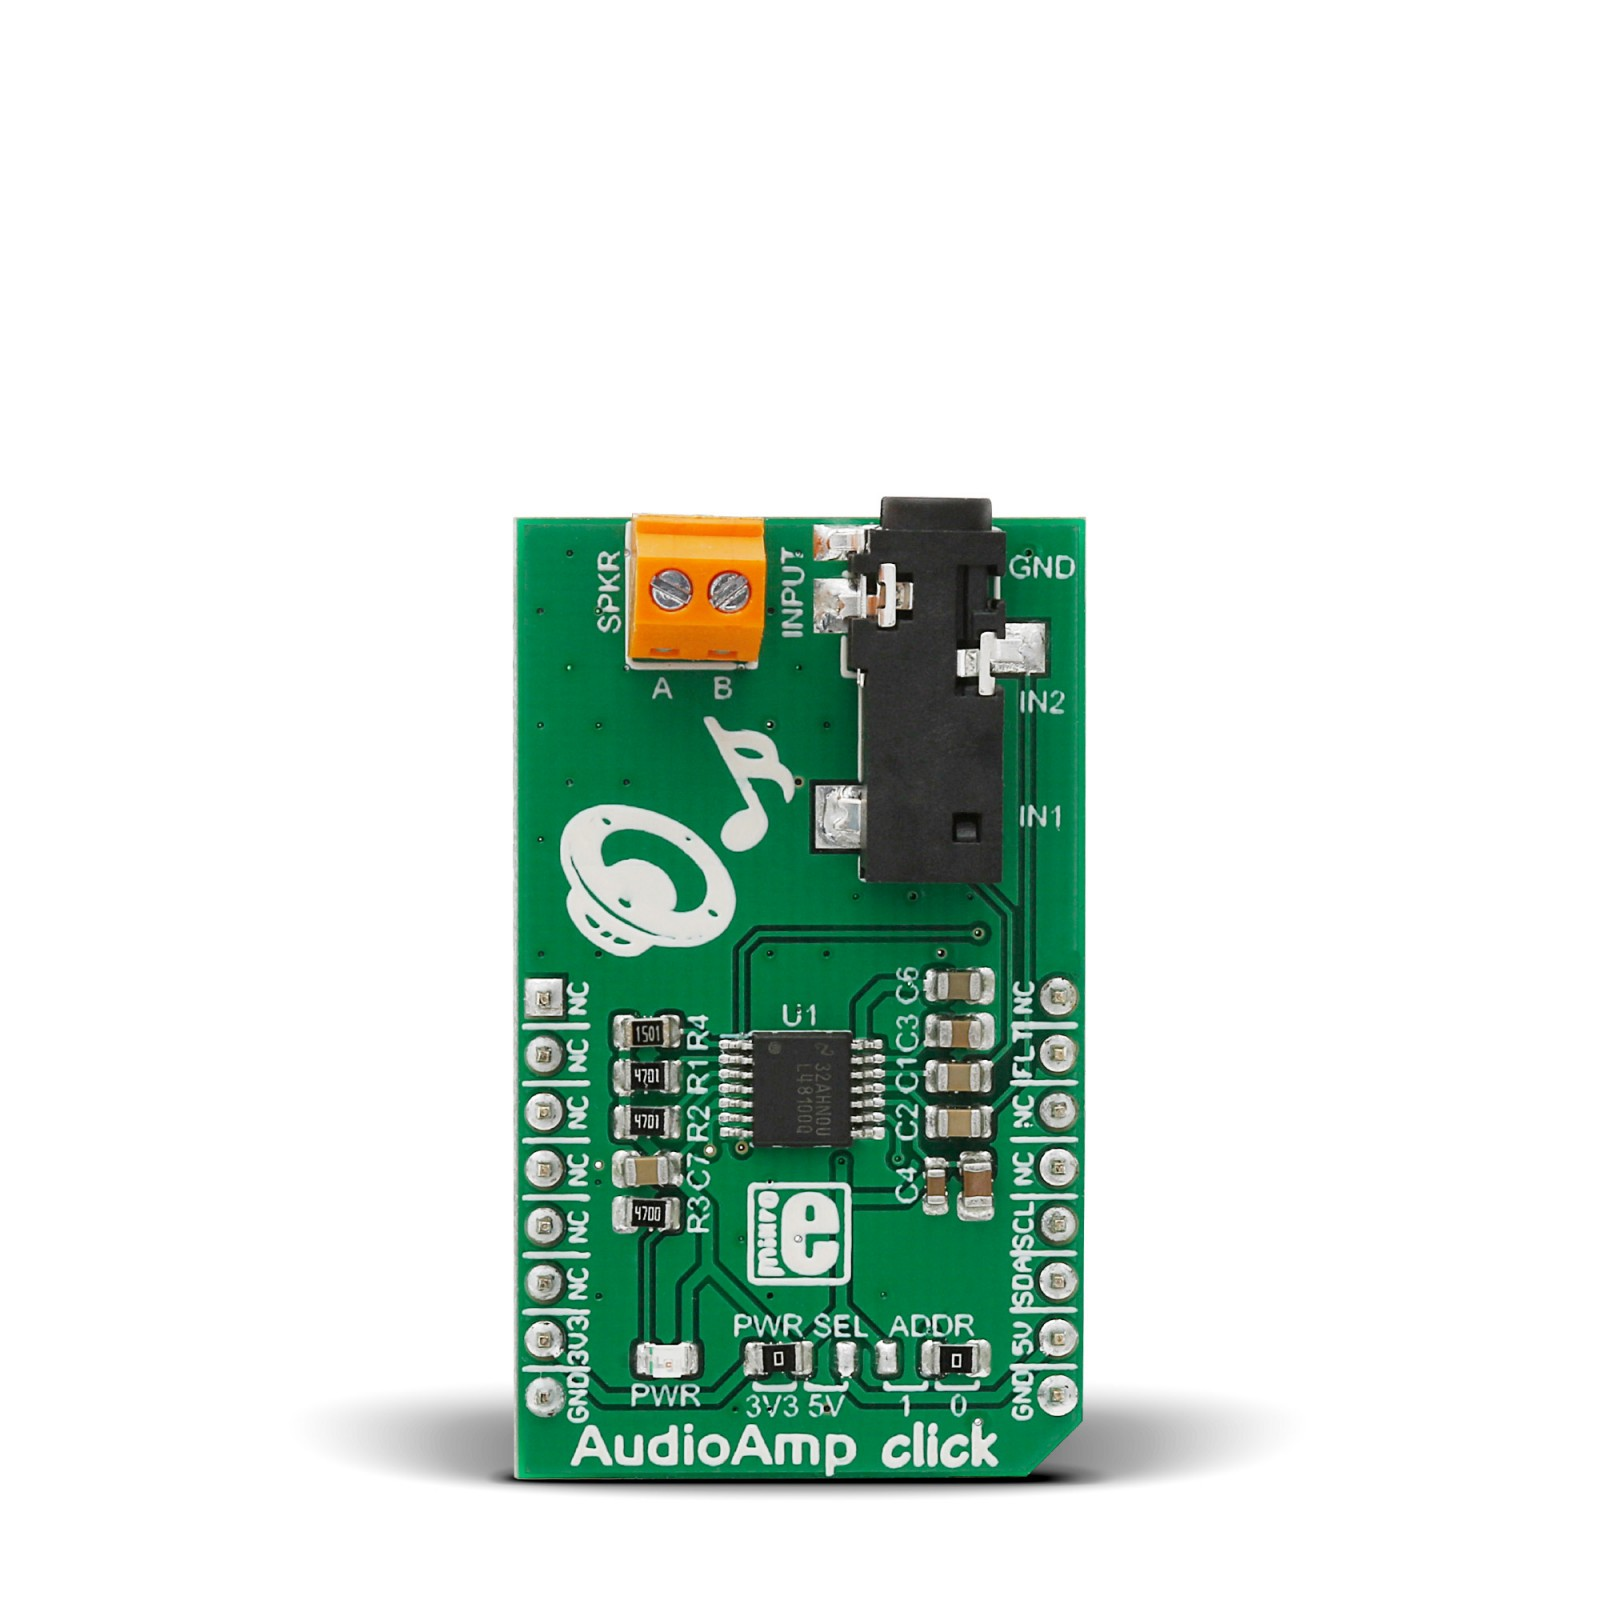 Buy Audio Amplifier Circuit Boardaudio Audioamp Click Board With Lm48100q Q1 Mgctlbxnmzp Mgctlbxv5112 Mgctlbxlc Mgctlbxpprestashop